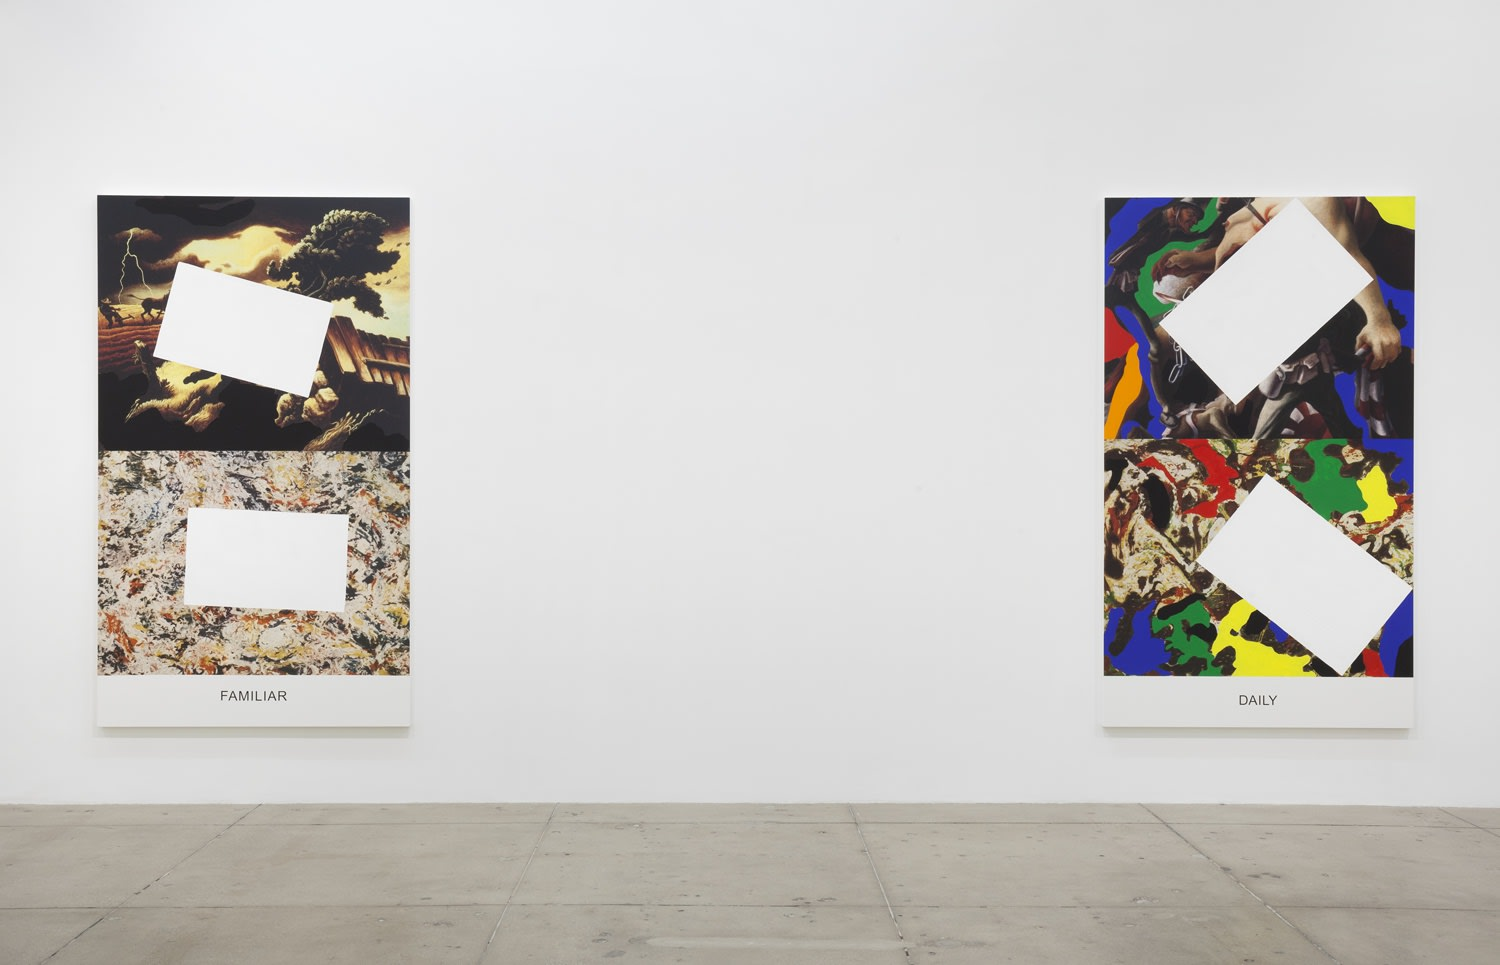 """2 colorful paintings partially covered with white rectangles. The text """"FAMILIAR"""" and """"DAILY"""" is written at the bottom."""